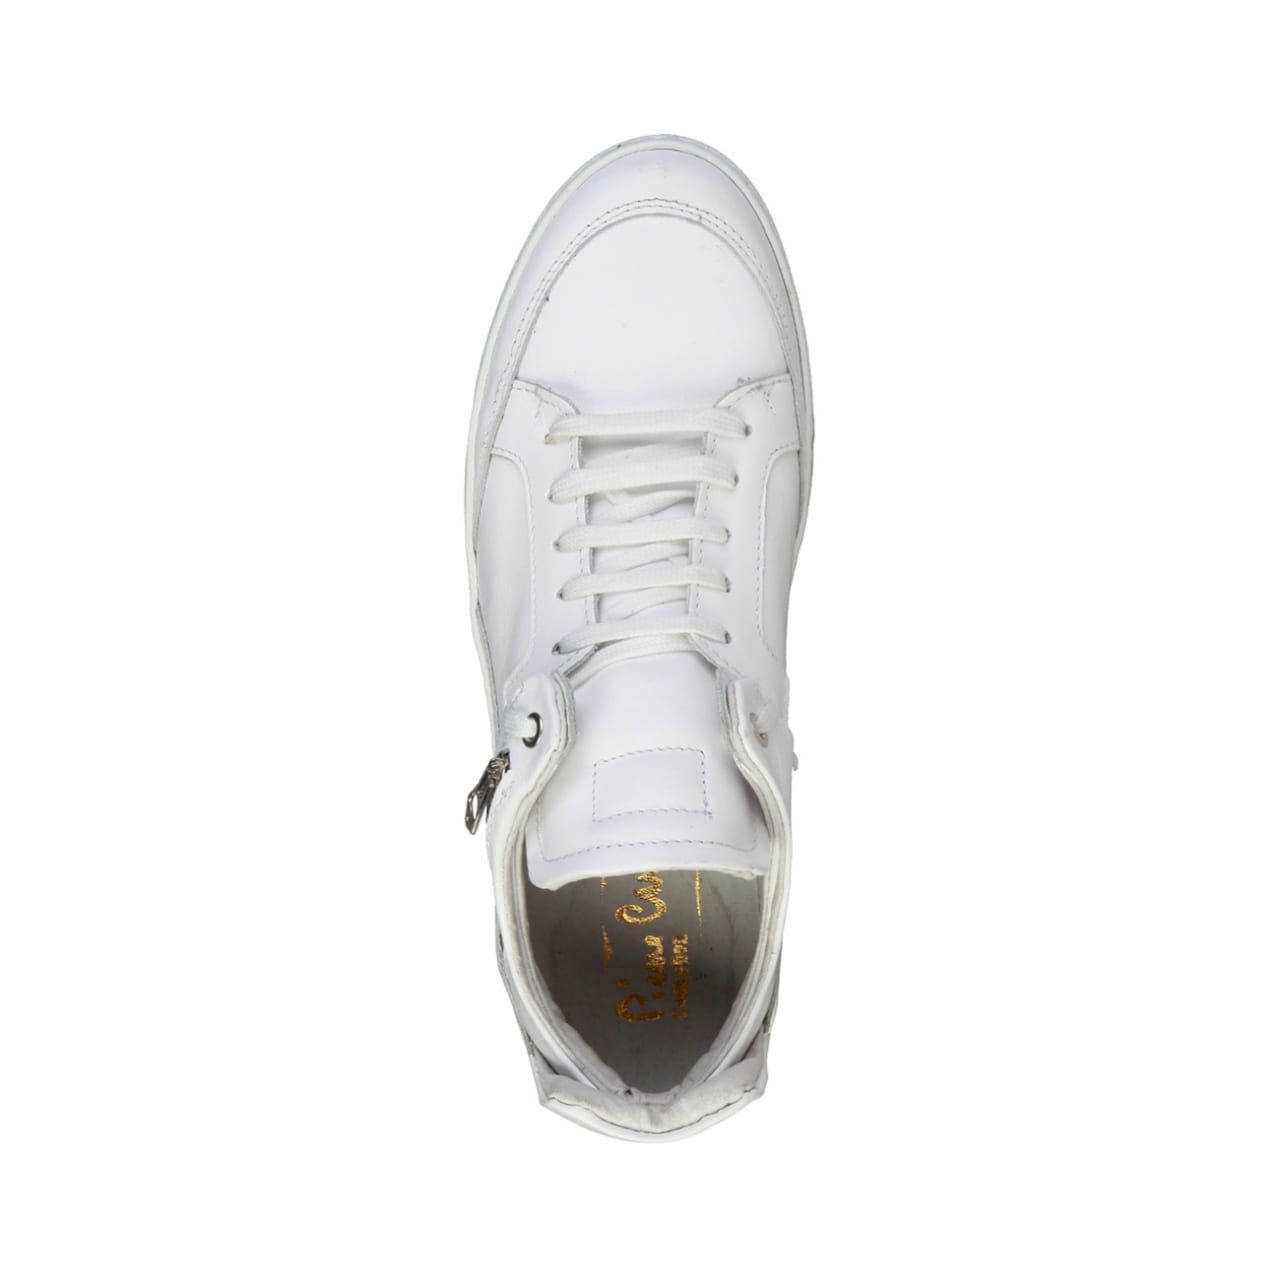 Pierre Cardin 2082c Check More At Http Fashionbye Com Products Pierre Cardin 2082c Pierre Cardin Sneakers Shoes